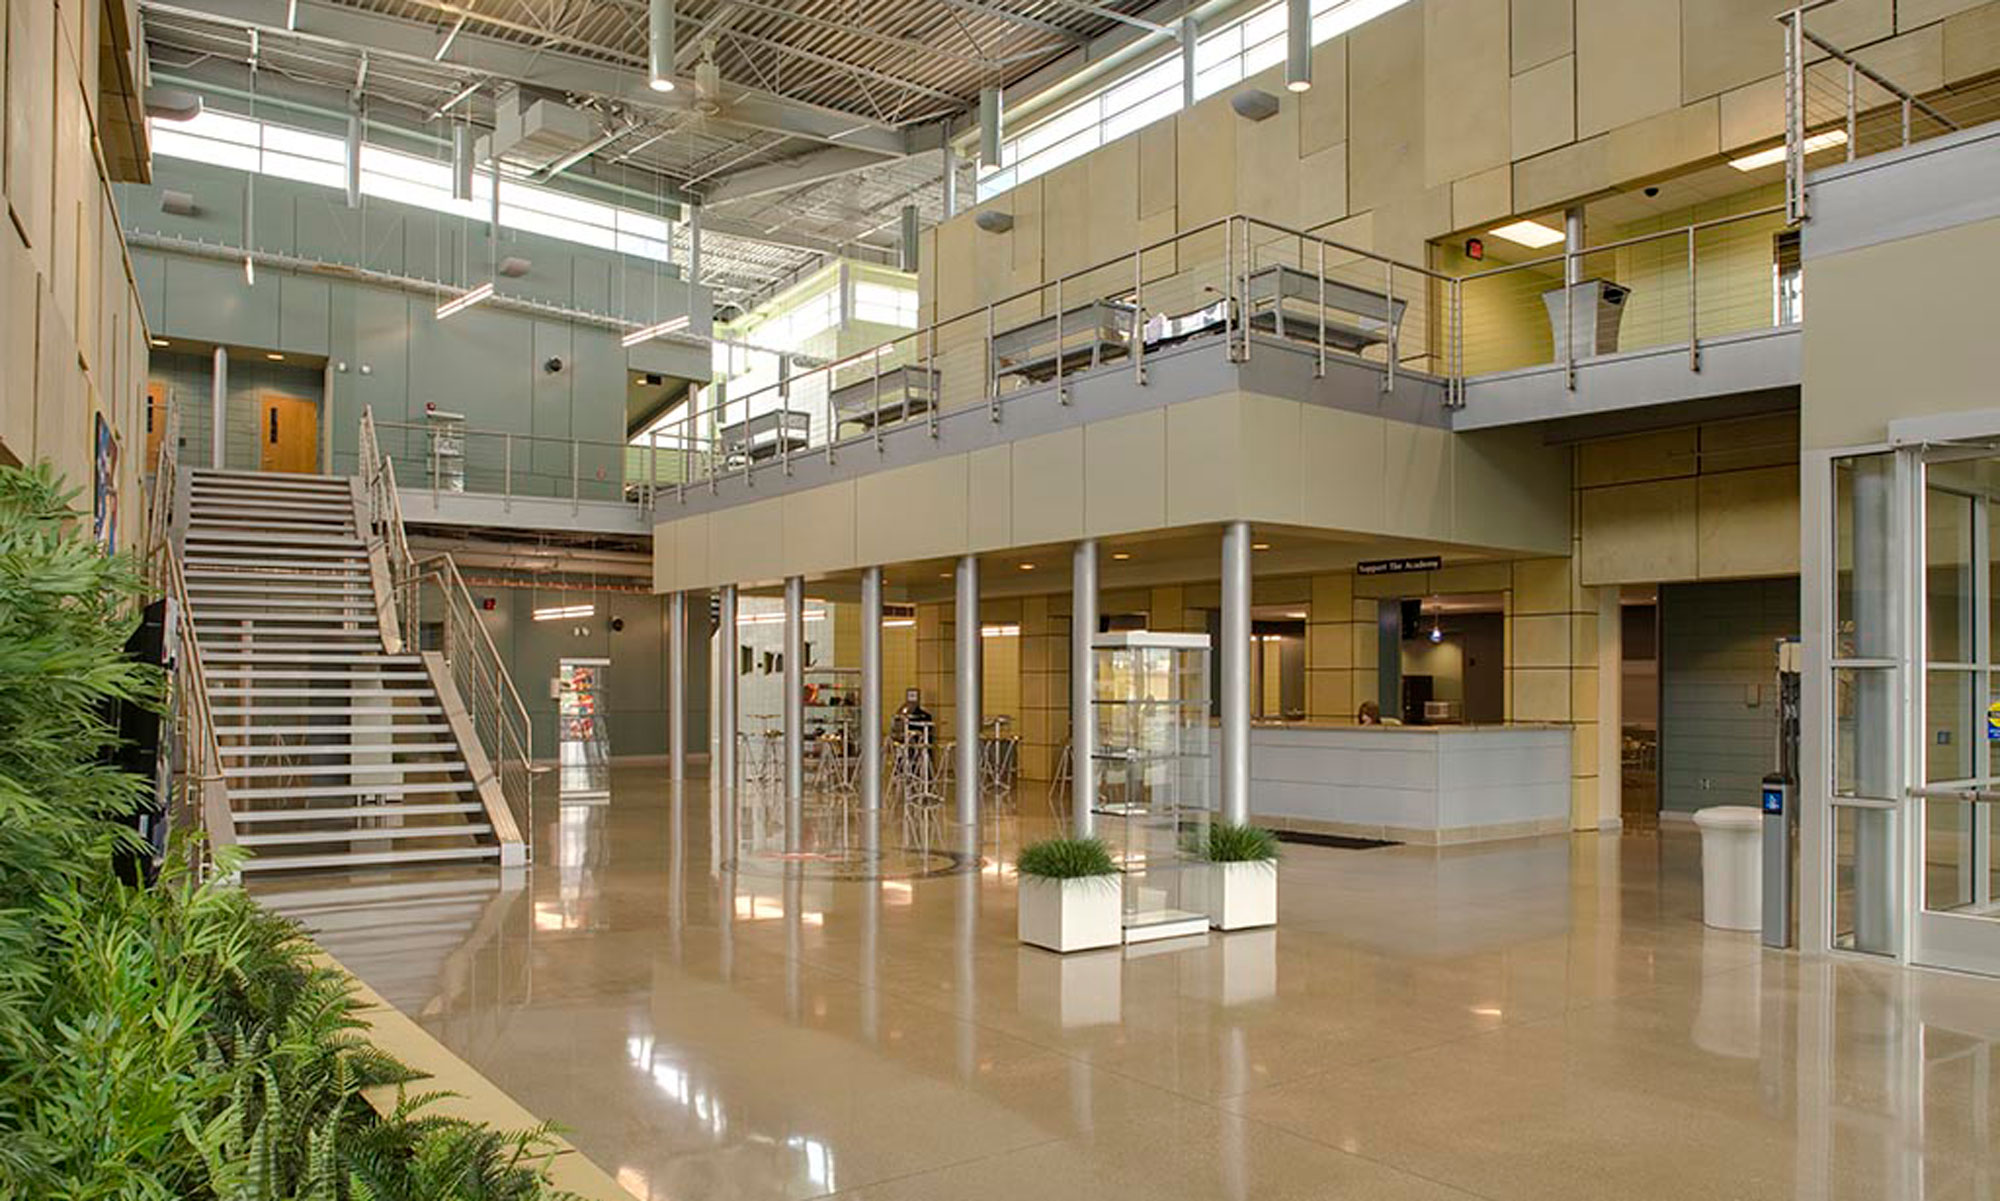 Public Safety Academy of Northeast Indiana Interior